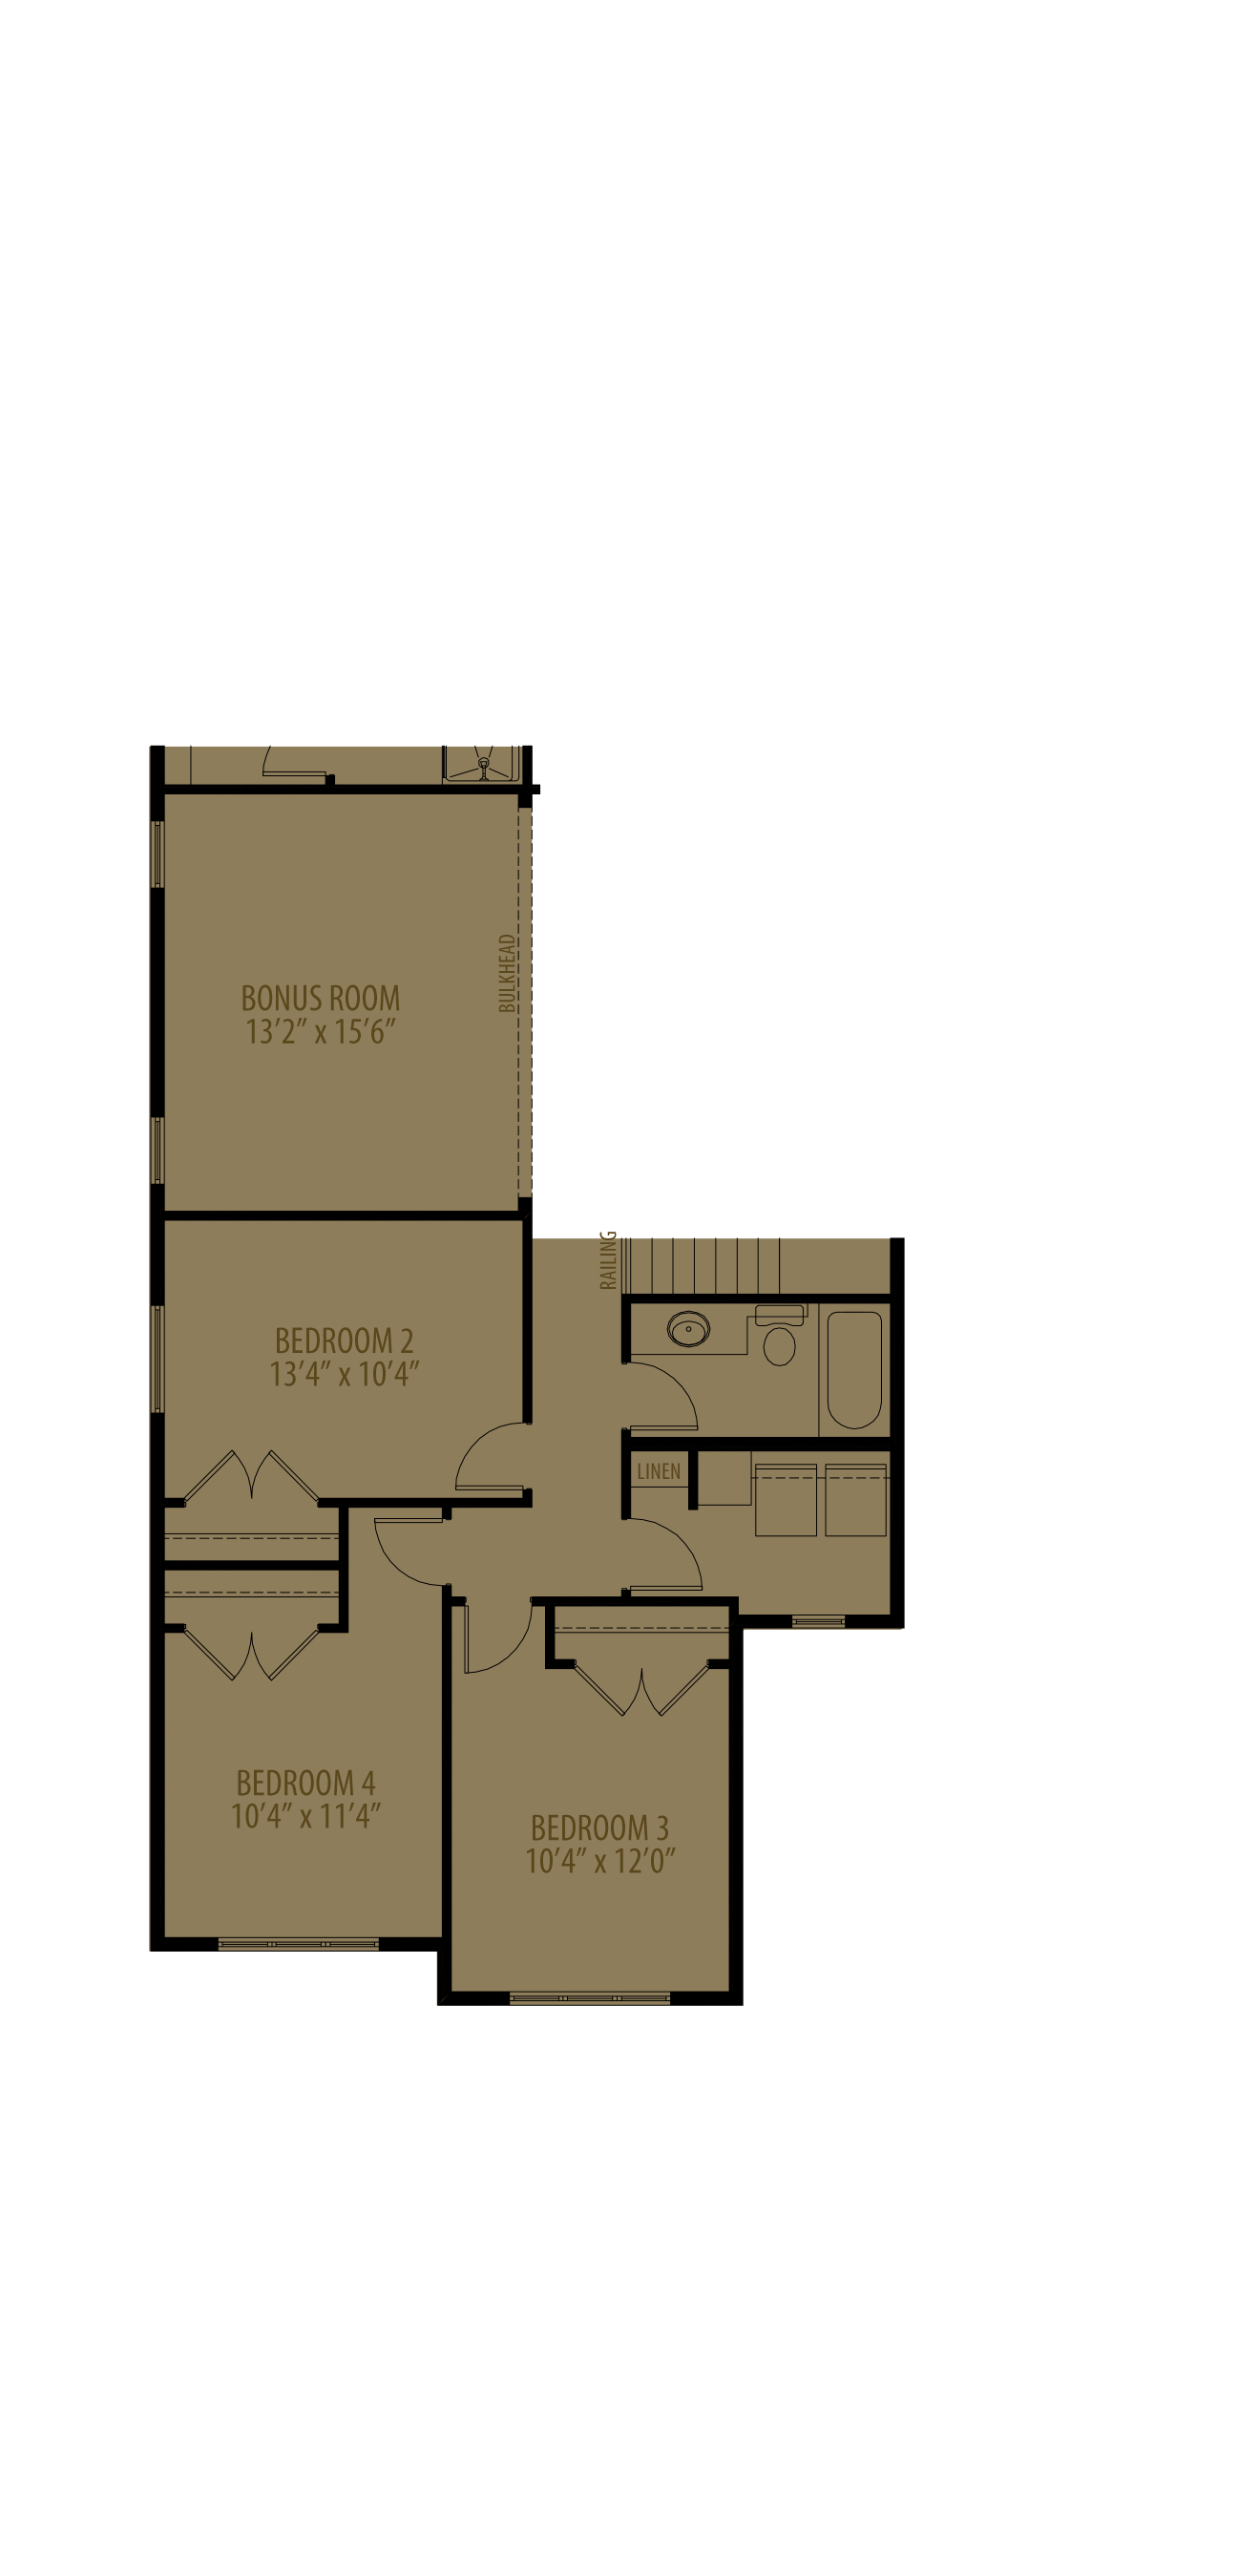 Optional 4th Bedroom adds 136 sq ft